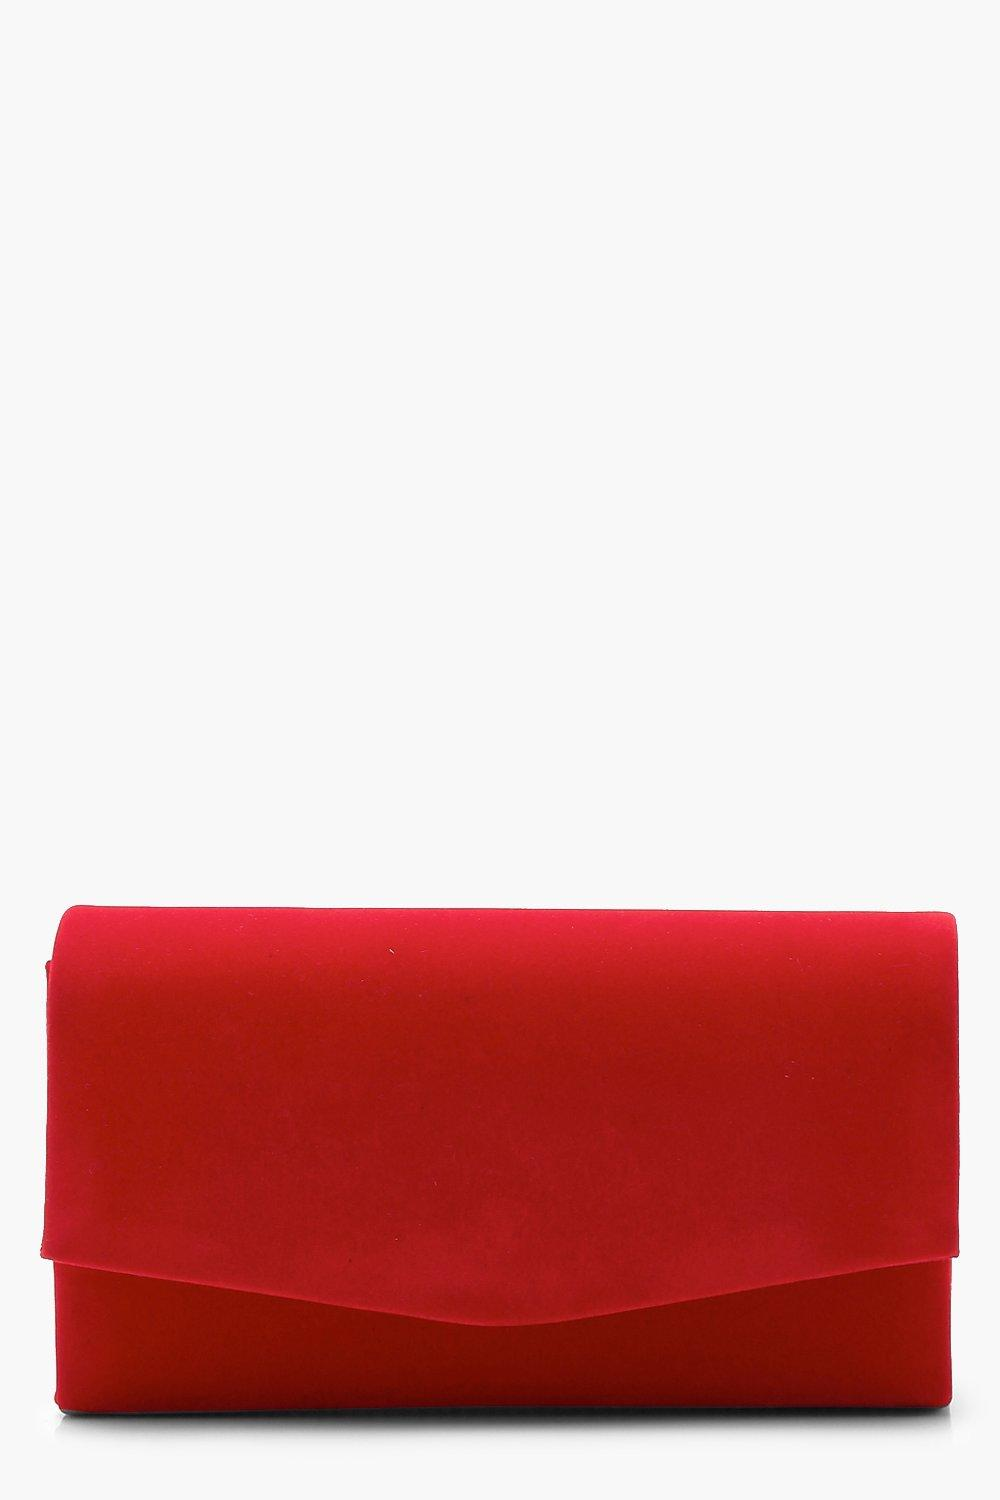 boohoo Womens Structured Suedette Clutch Bag & Chain - One Size, Red